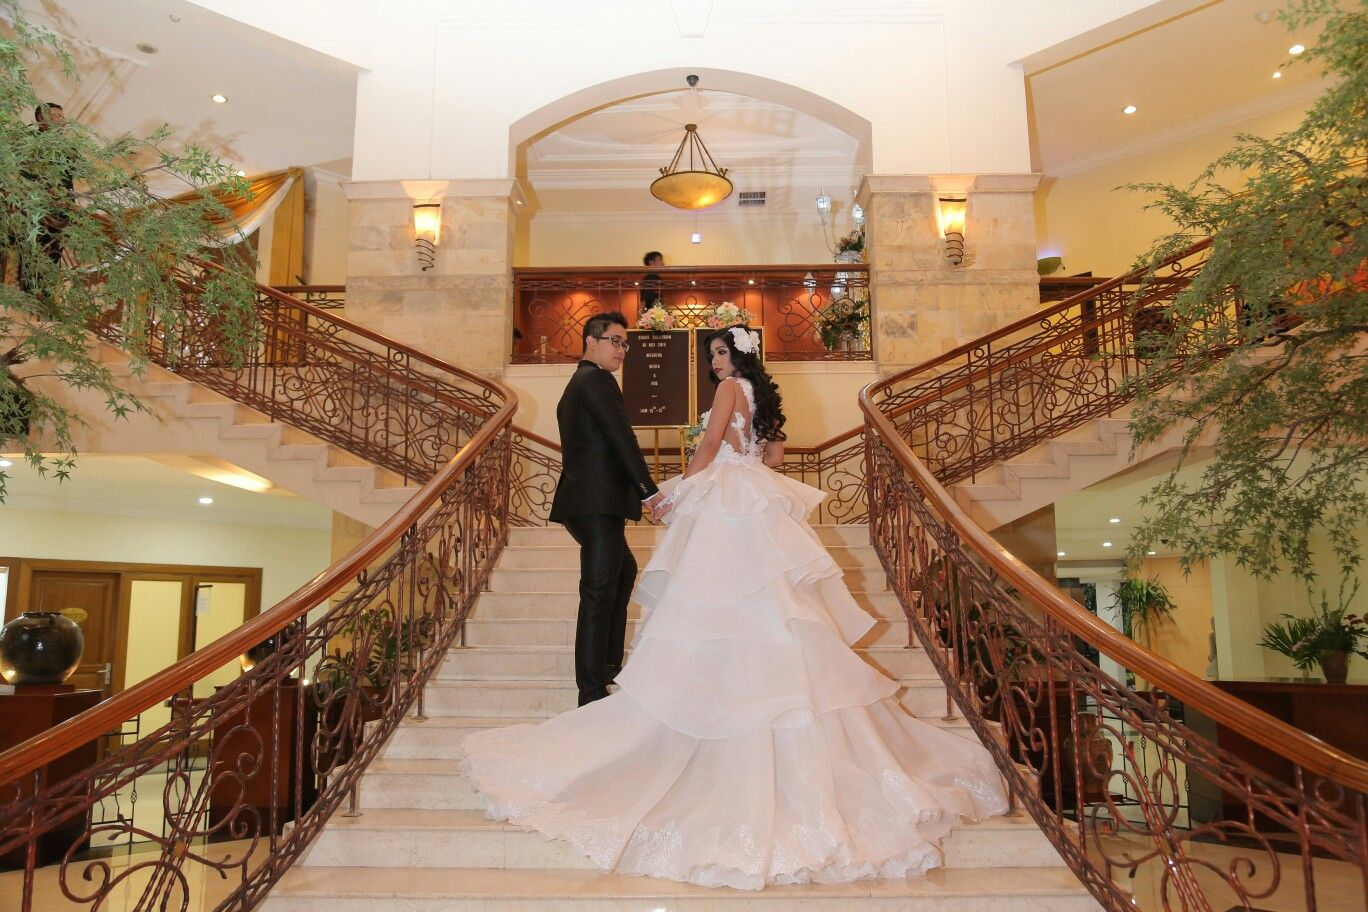 Wedding white gown by Seyvia Charis